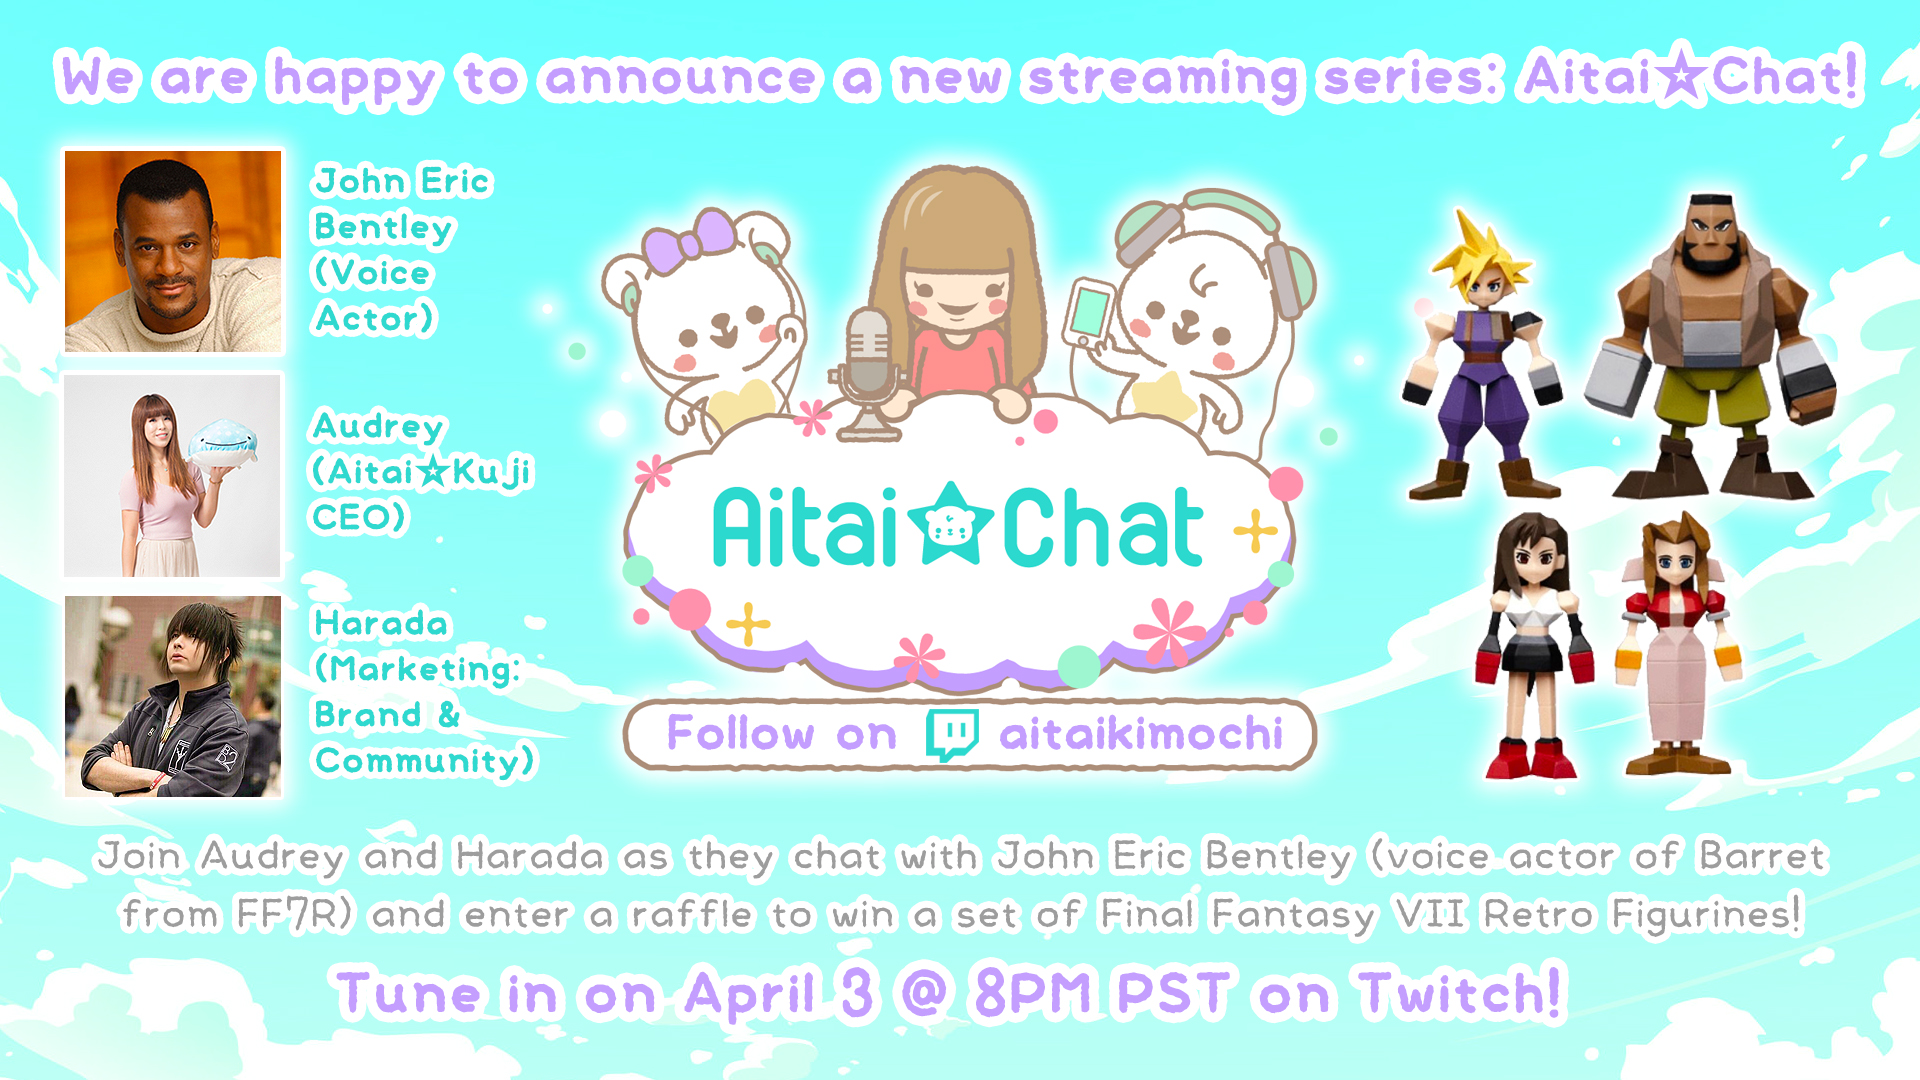 Introducing a new Streaming Series: Aitai☆Chat! Our first guest is John Eric Bentley, Voice of Barret from FF7R!